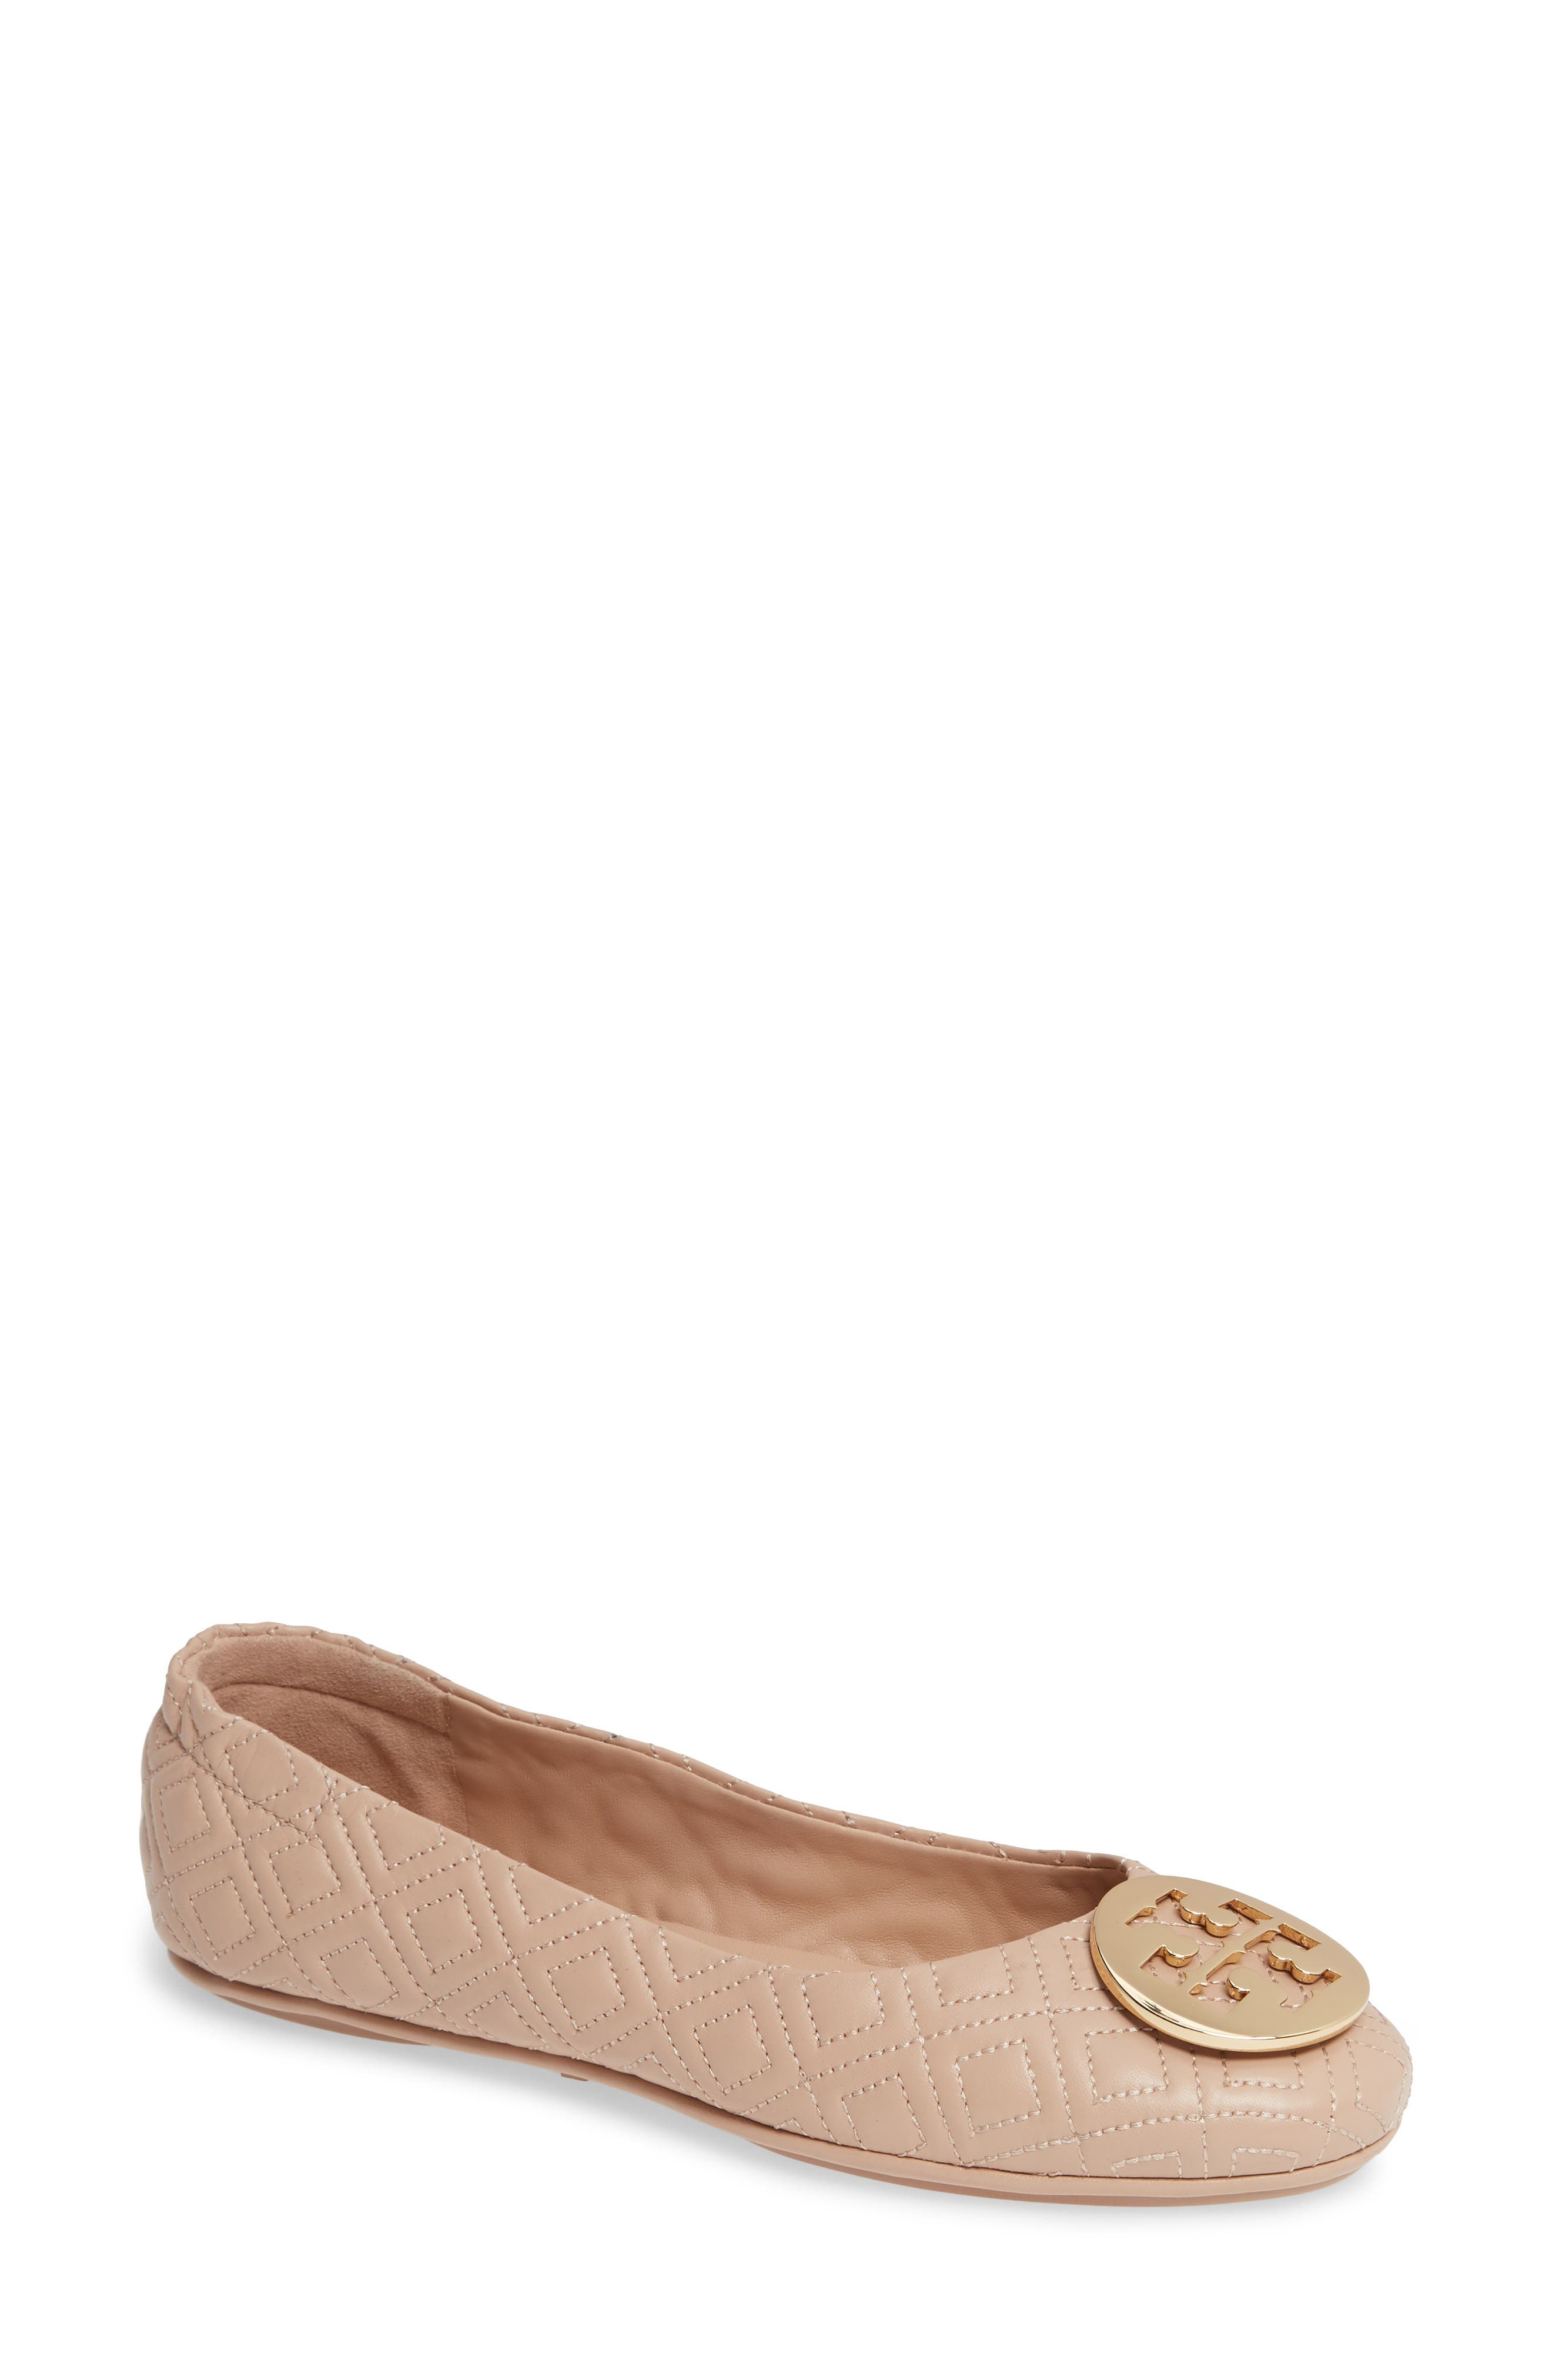 Tory Burch Quilted Minnie Flat, Beige